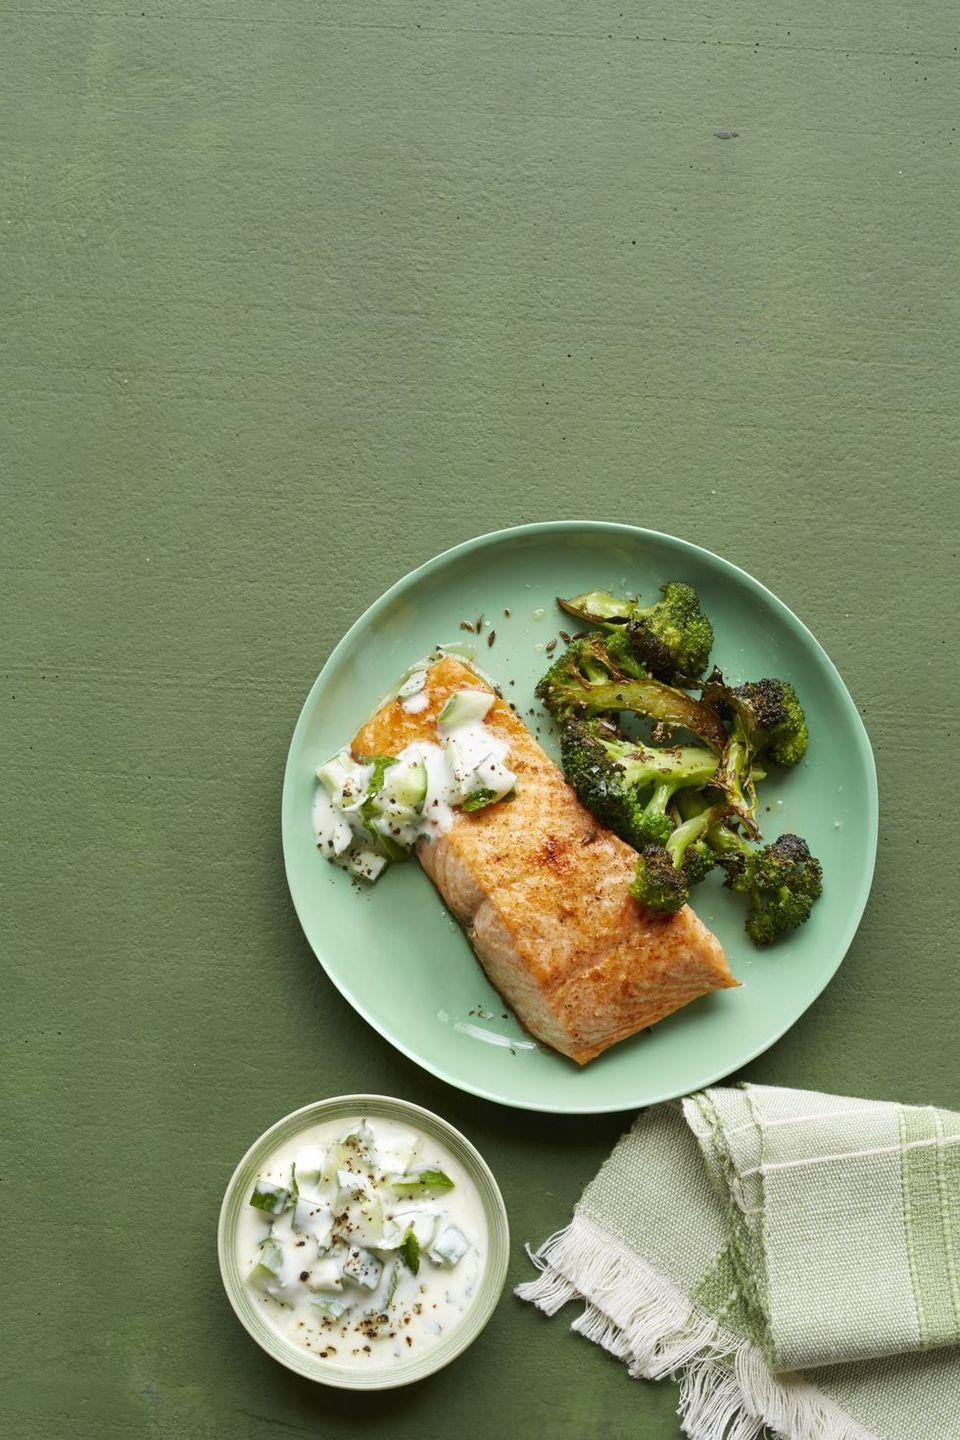 "<p>An unbelievably flavorful version of the stereotypical healthy meal of salmon and broccoli — but this time with a zesty yogurt sauce.</p><p><em><a href=""https://www.womansday.com/food-recipes/food-drinks/recipes/a57716/salmon-yogurt-sauce-roasted-broccoli-recipe/"" rel=""nofollow noopener"" target=""_blank"" data-ylk=""slk:Get the Spicy Salmon with Yogurt Sauce and Roasted Broccoli recipe."" class=""link rapid-noclick-resp"">Get the Spicy Salmon with Yogurt Sauce and Roasted Broccoli recipe.</a></em></p>"